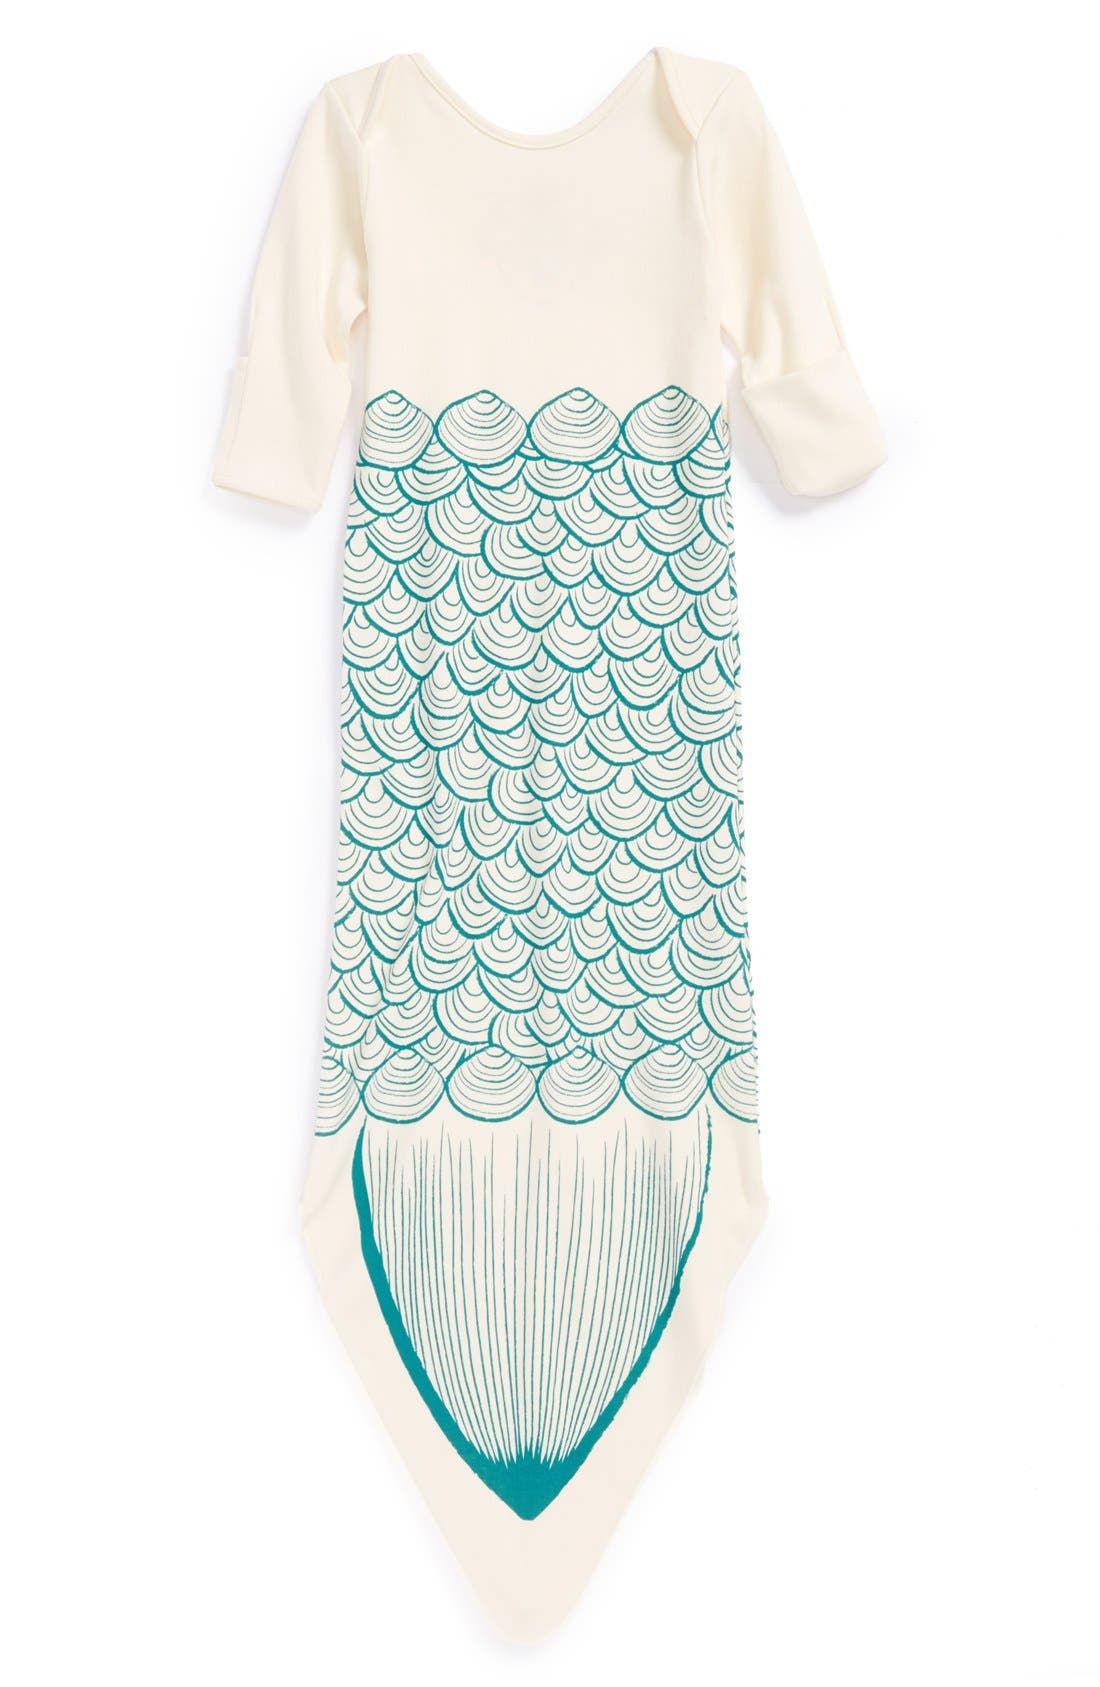 Alternate Image 2  - Electrik Kidz 'Mermaid' Organic Cotton Gown (Baby Girls)